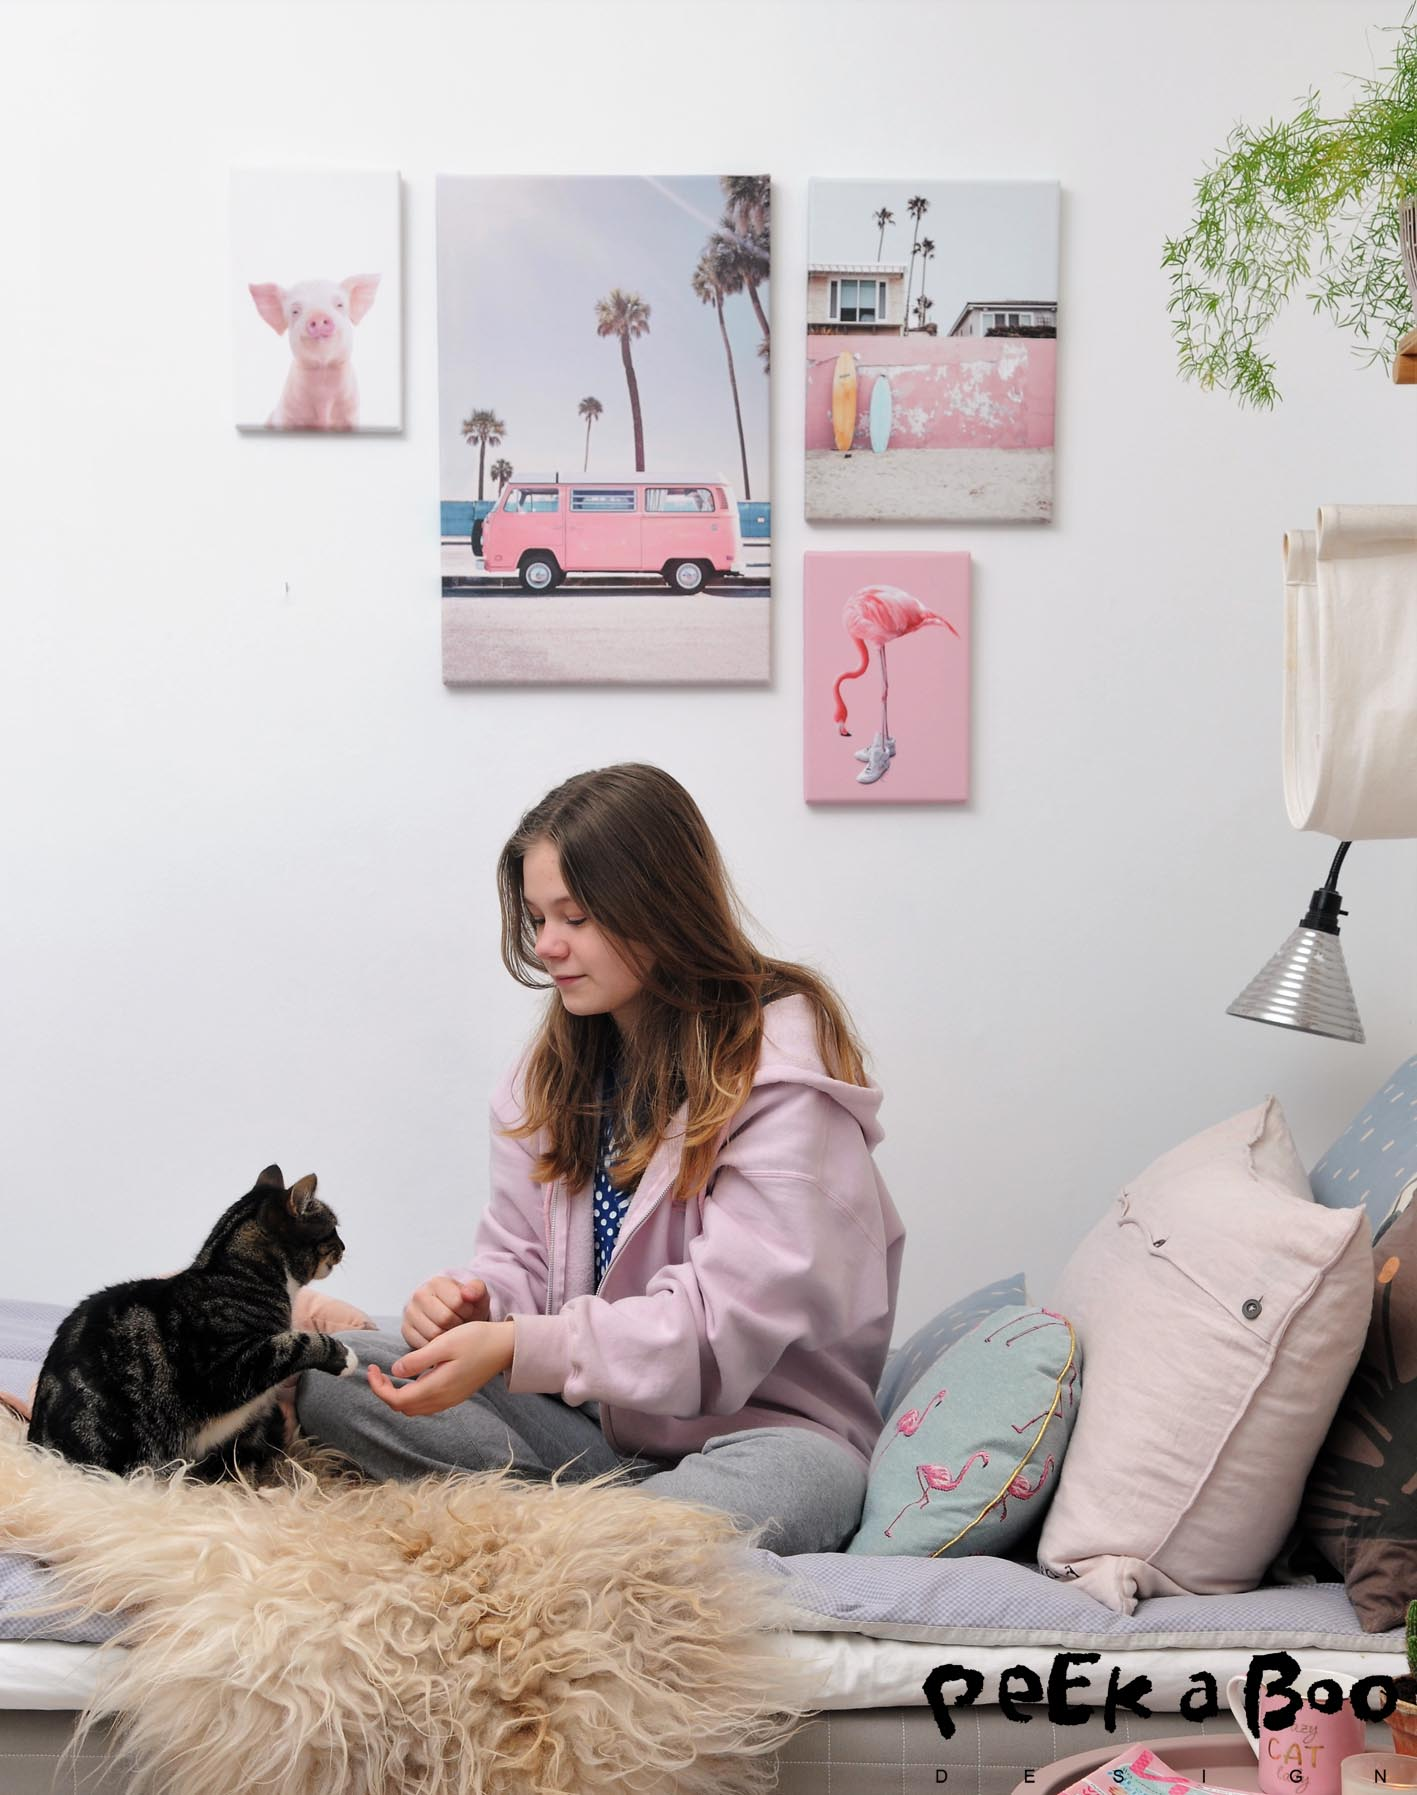 Flora and our cat Luna, enjoying the cosy corner with the pastel picturewall.